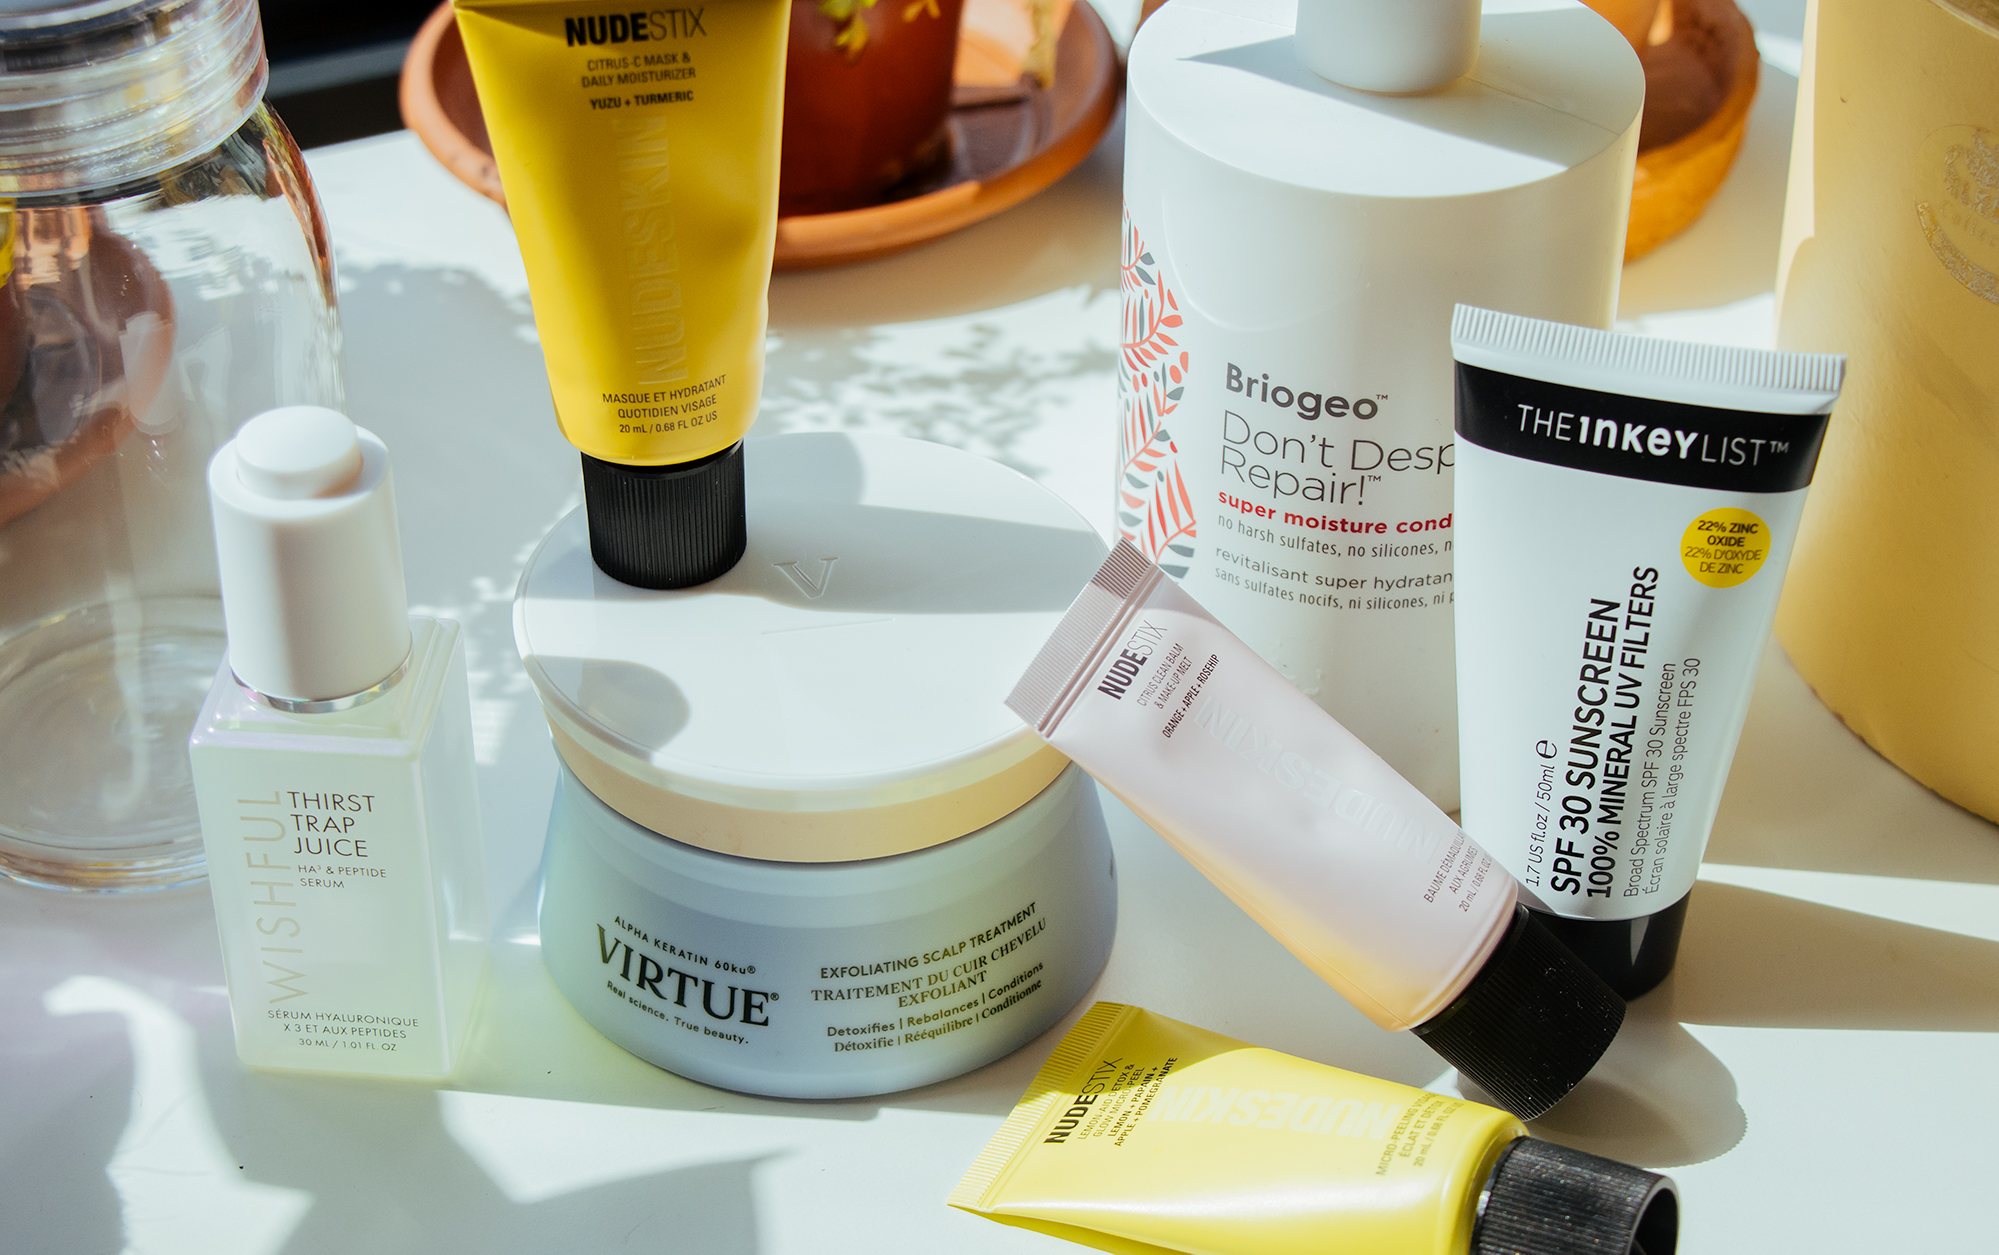 Psst: New Clean Beauty That Launched At Sephora While You Were Sleeping